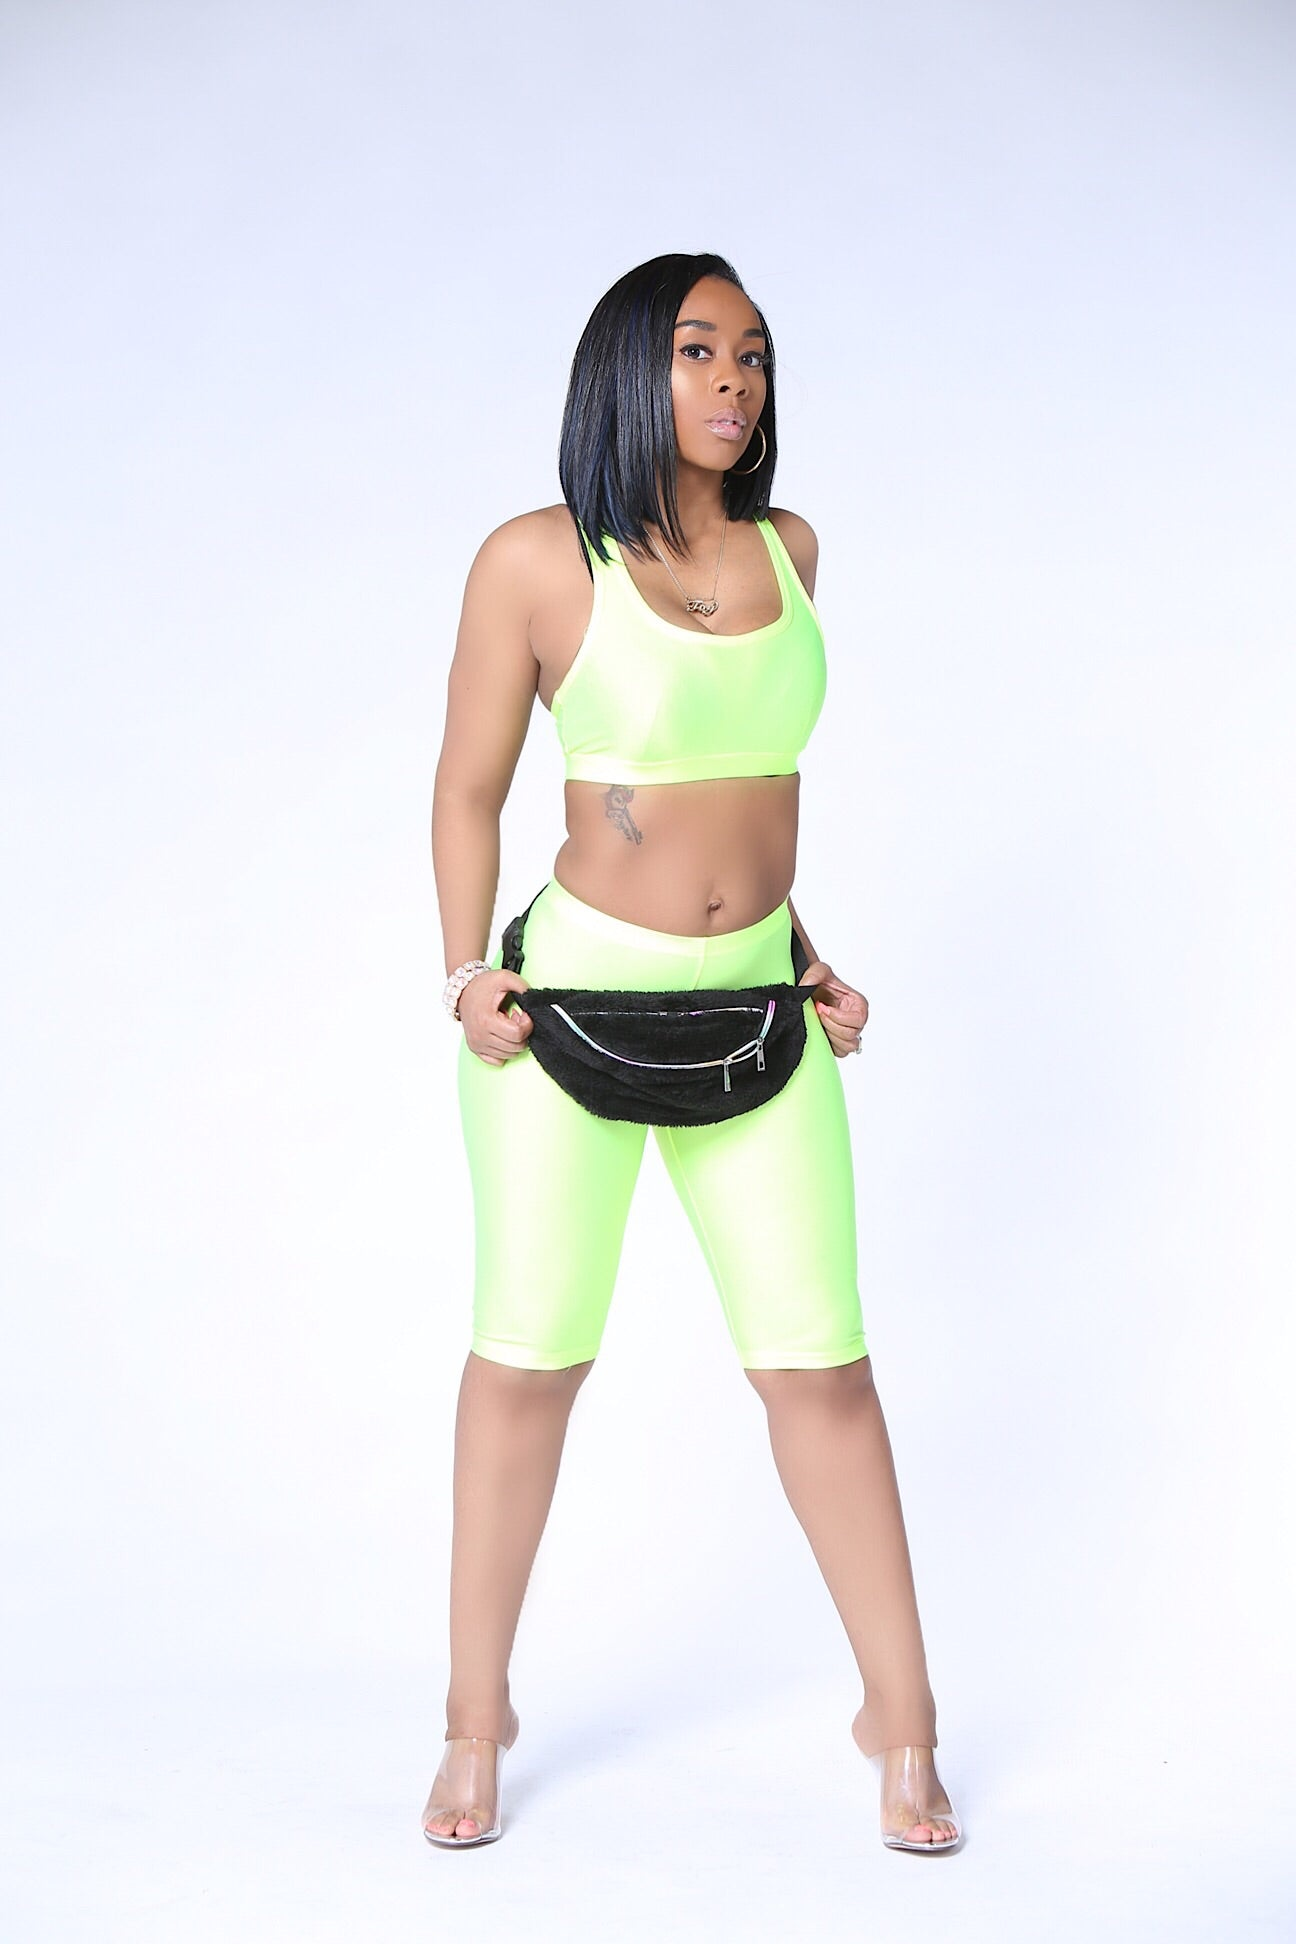 VICTORY LAP SET - IntrigueFashions